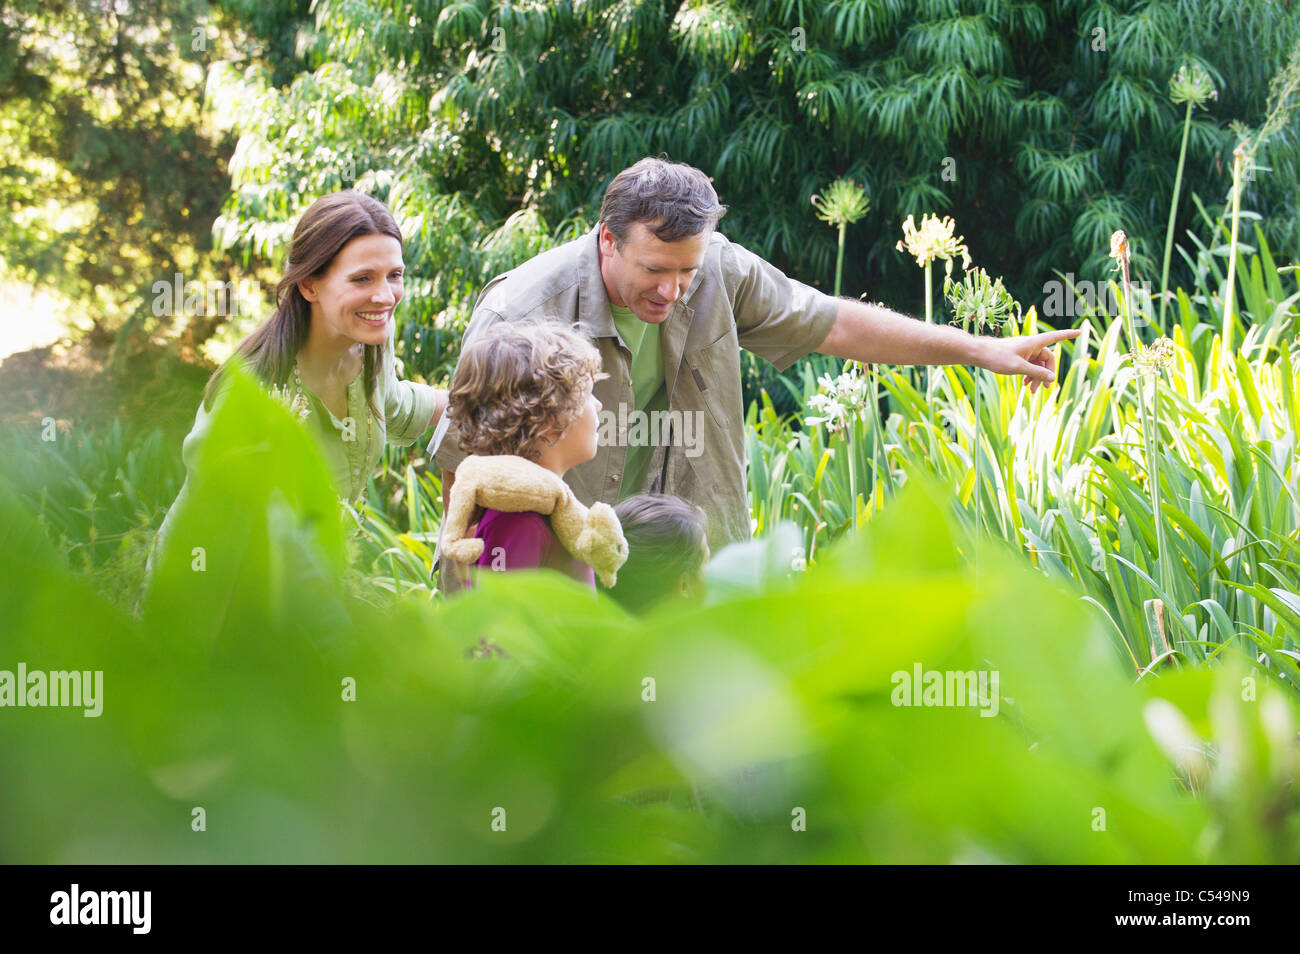 Two little children walking in a garden with their parents - Stock Image